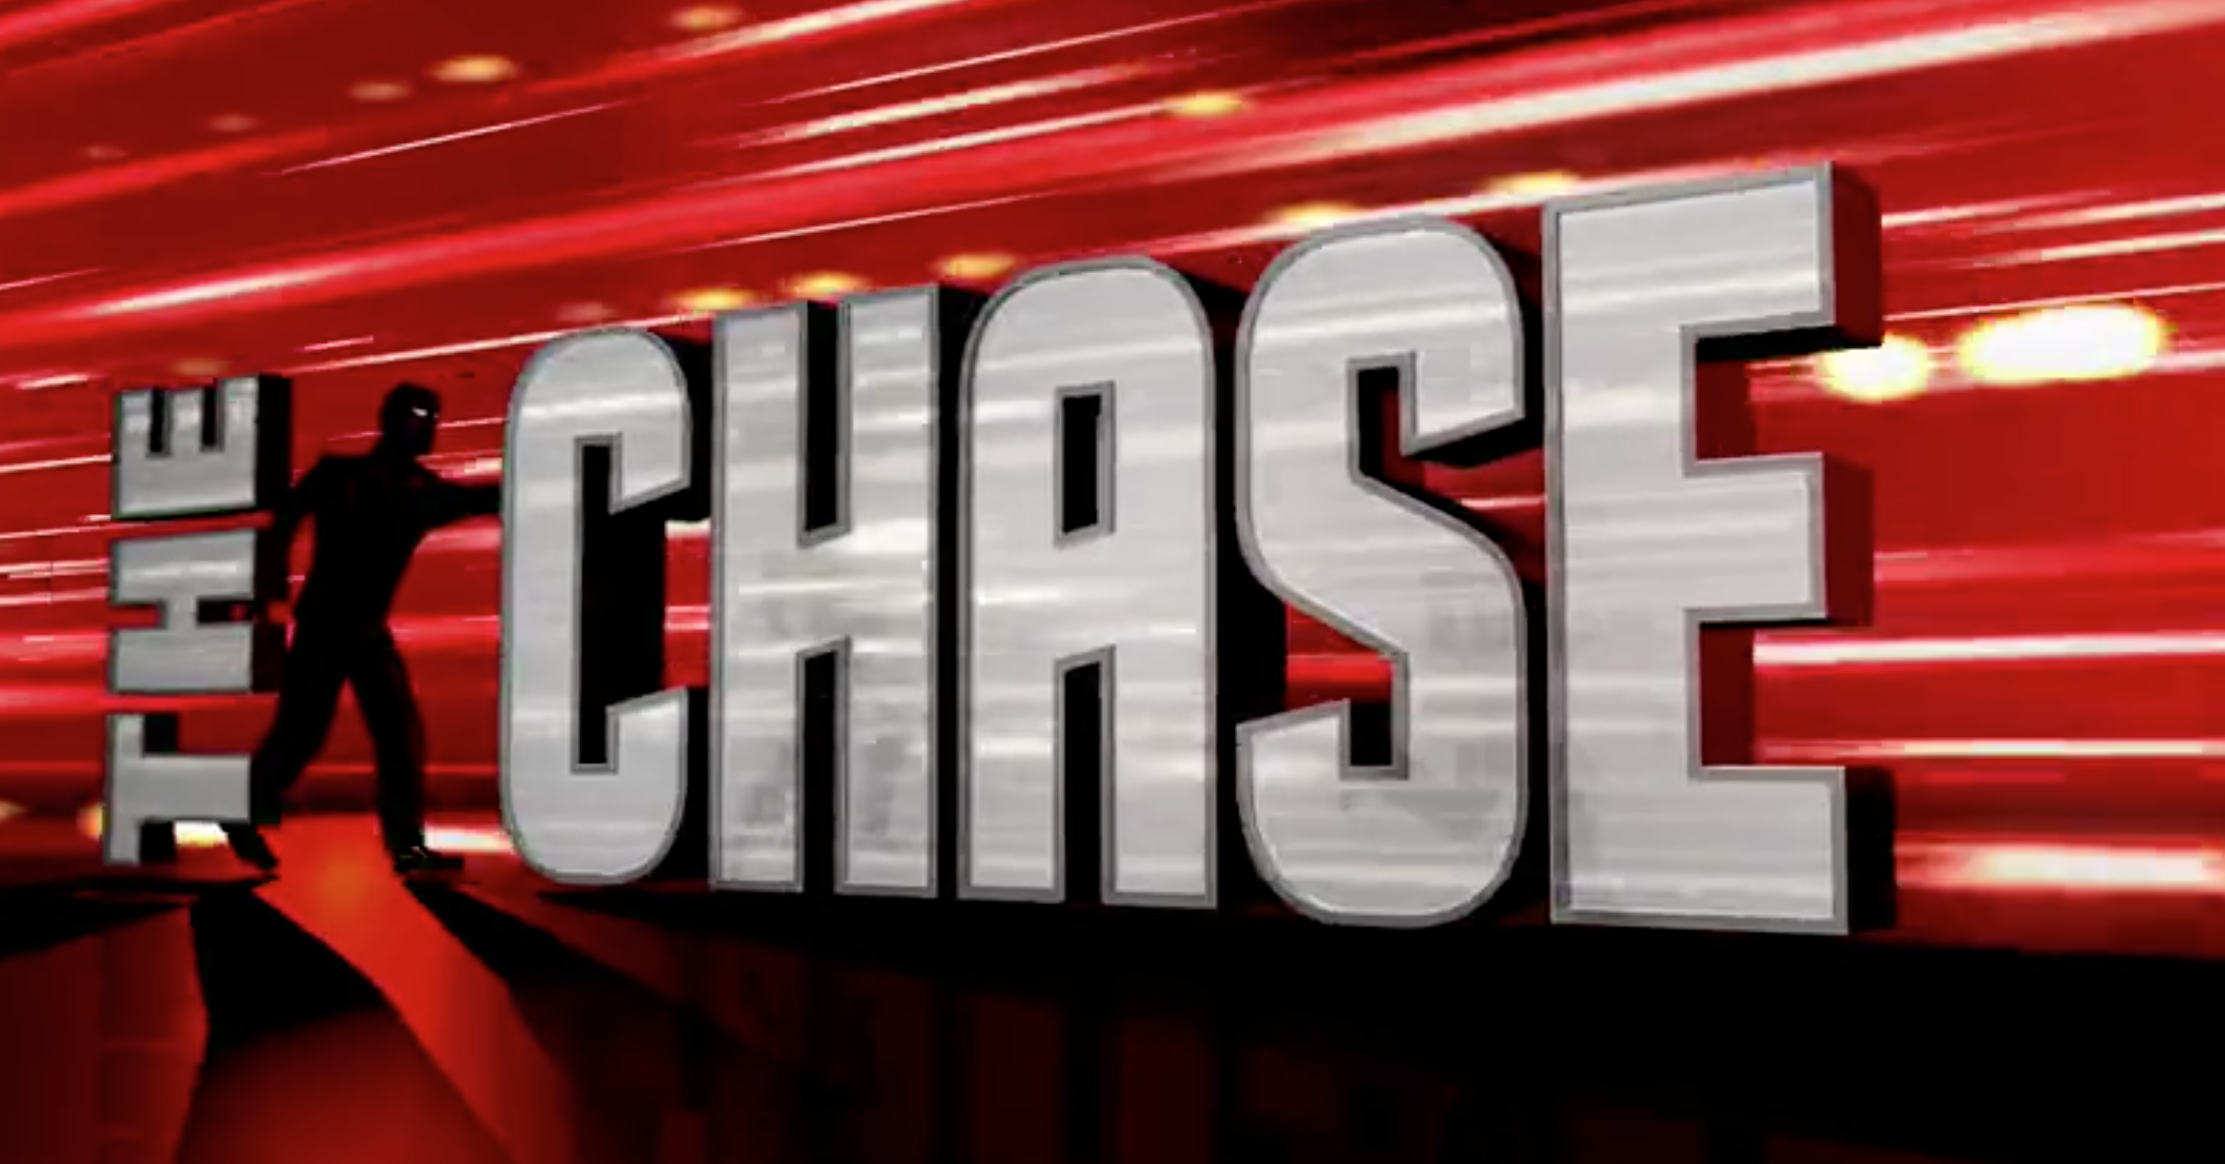 The Chase recruits its first new Chaser in five years and the sixth quizmaster is a former contestant